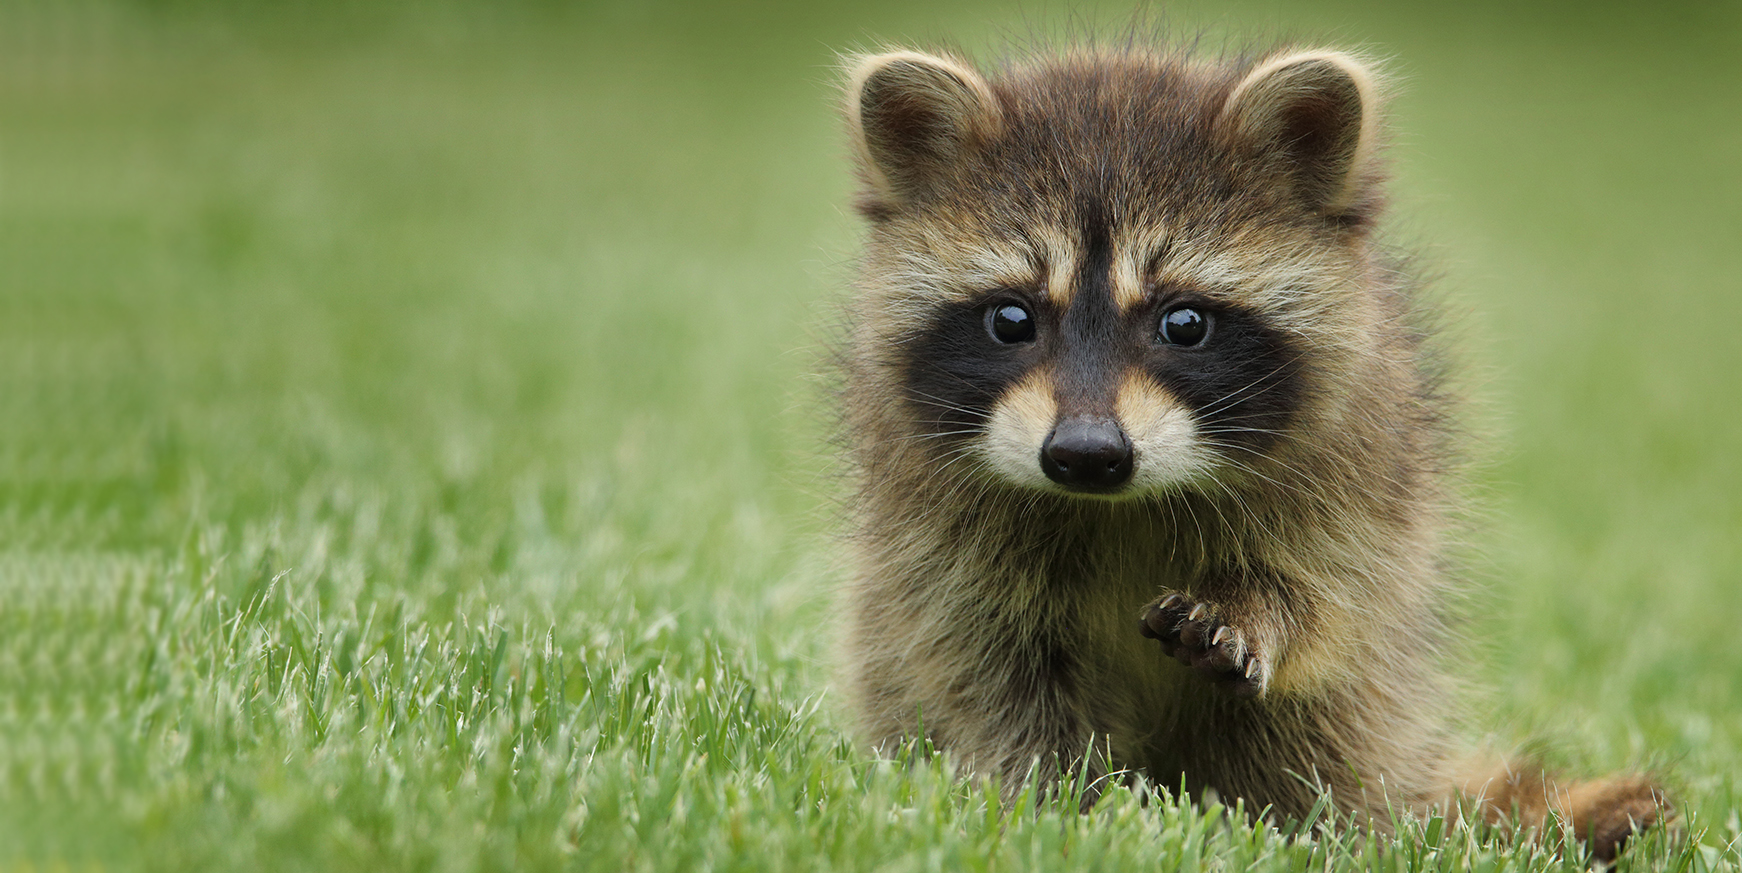 Baby raccoon walking on grass